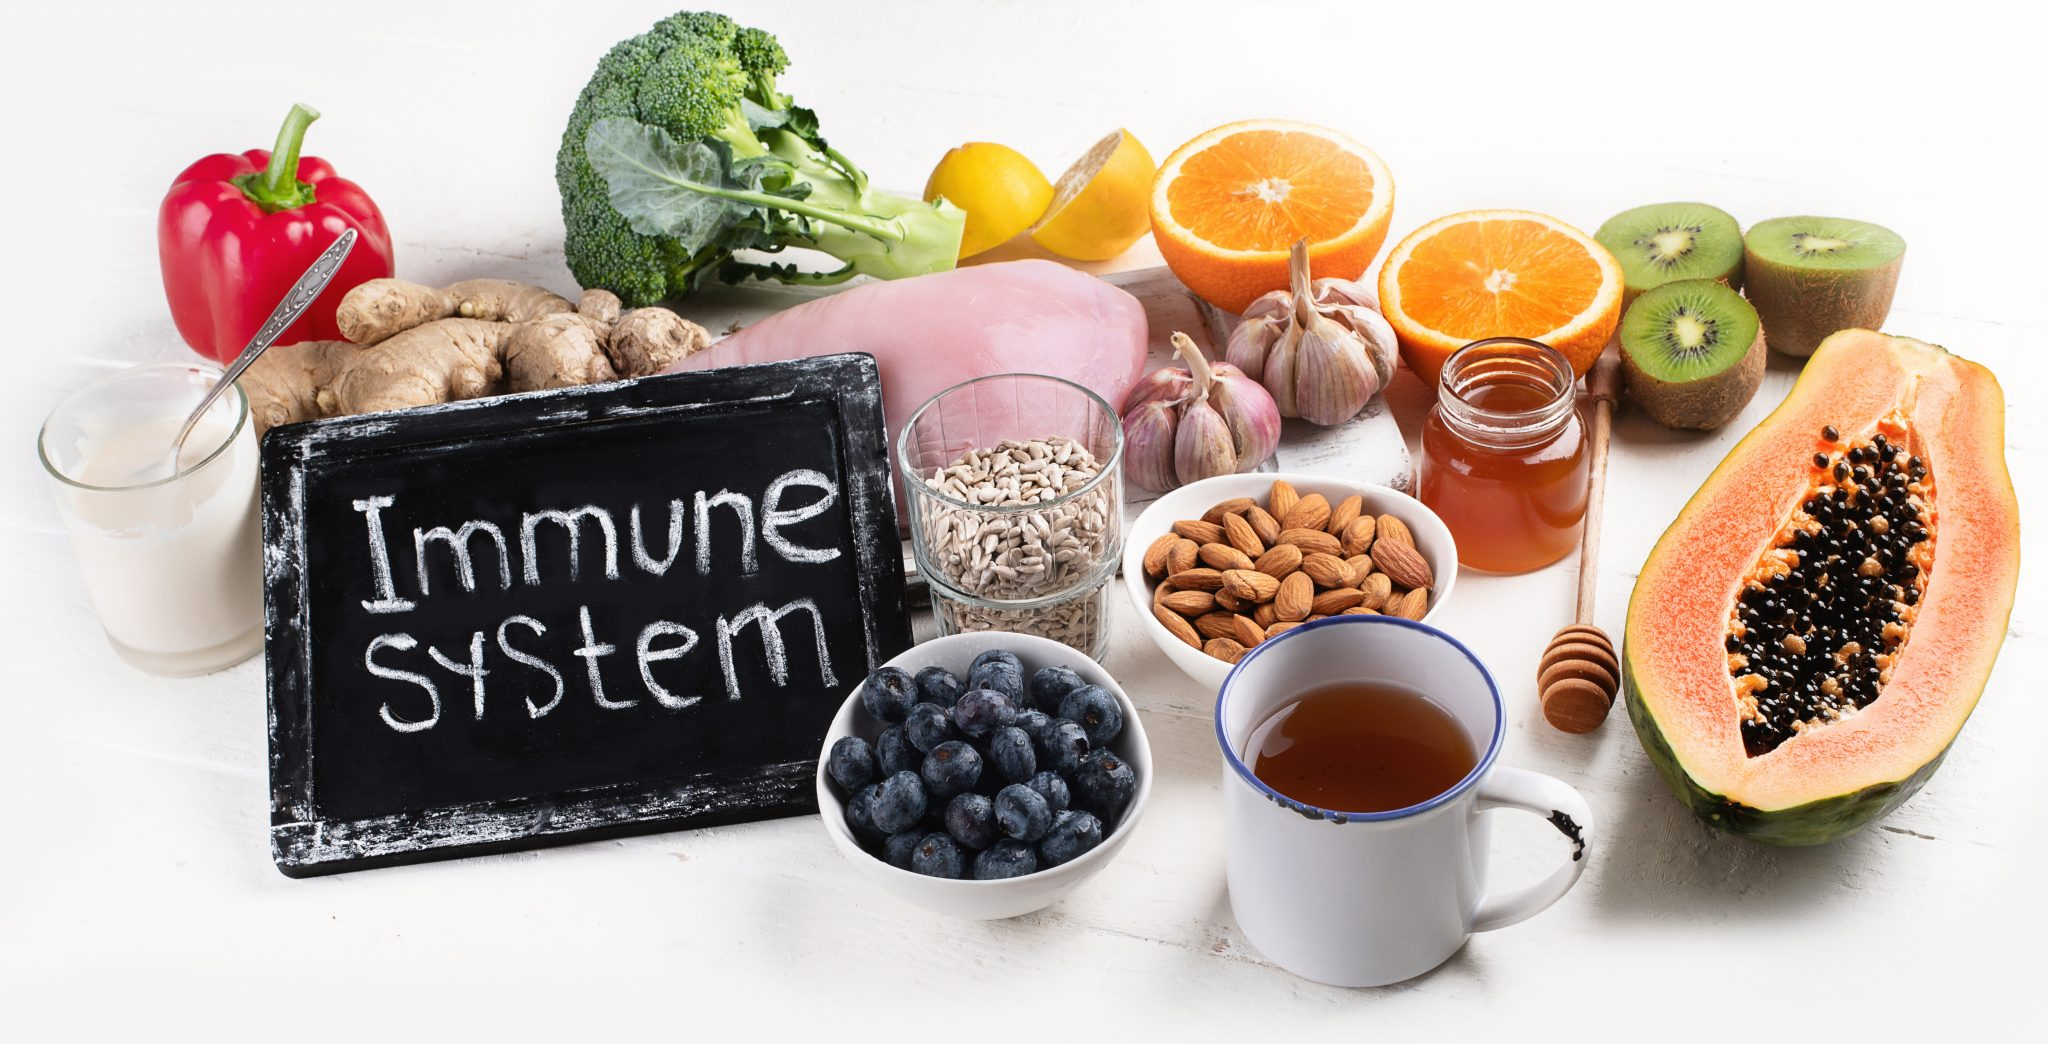 Fruits and vegetables surrounded by a sign that says Immune System.